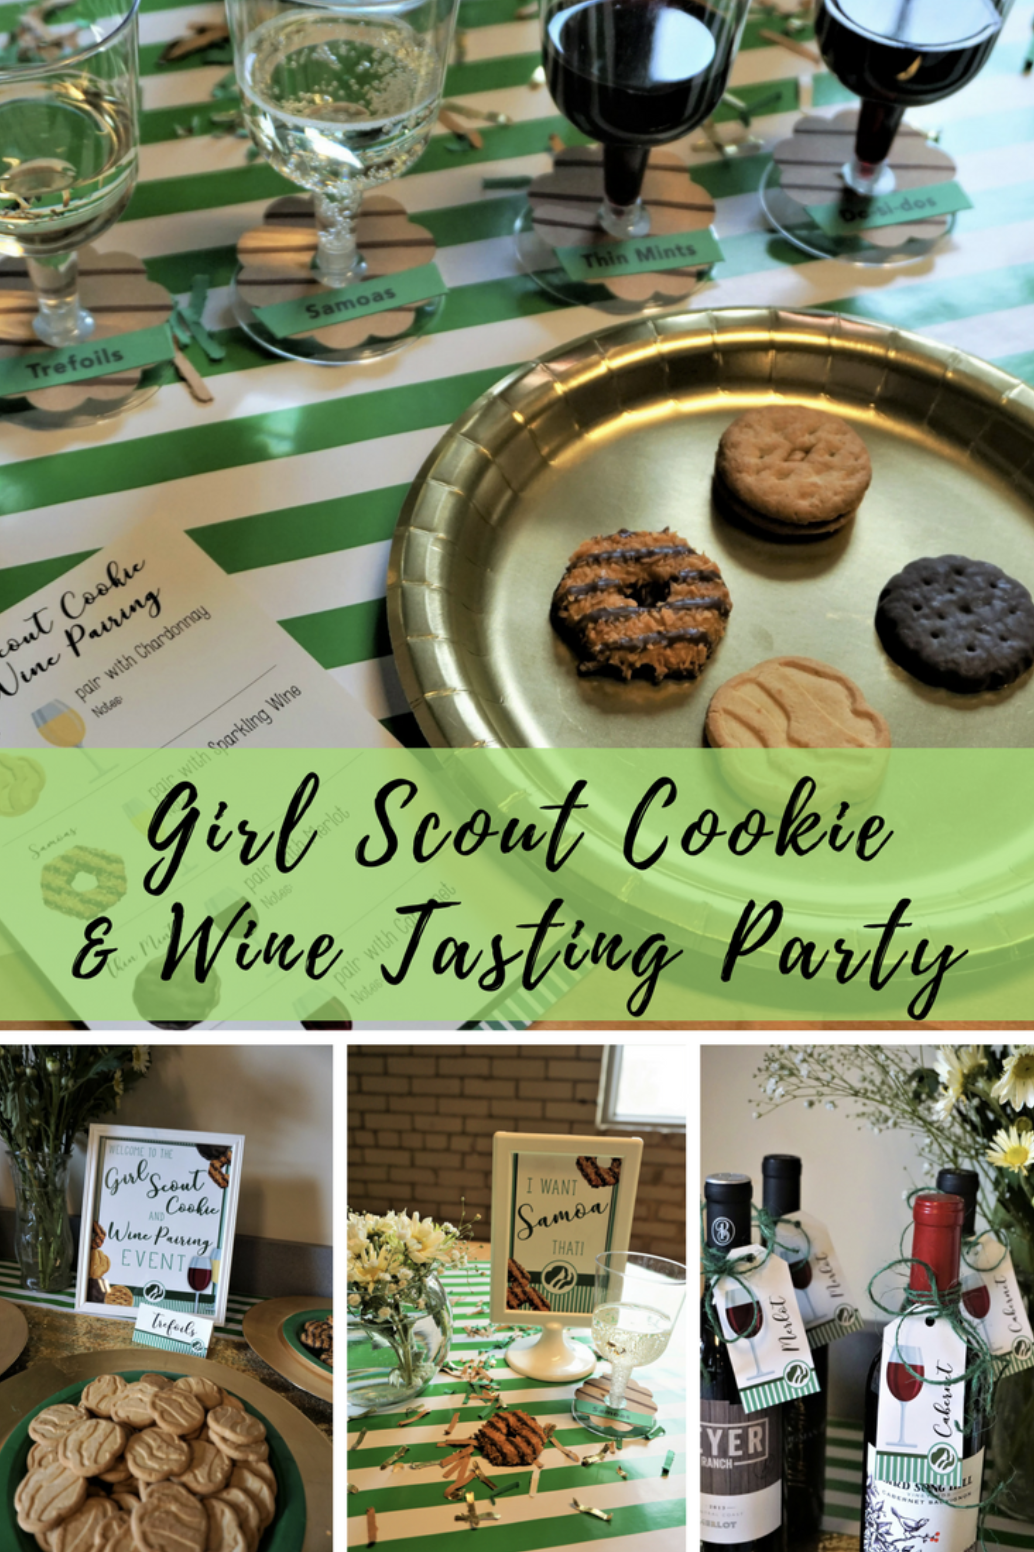 Pair your favorite Girl Scout cookies with wine for a fun gathering and support your local girl scouts! #winepairing #girlscoutcookies #winetasting #girlscouts #thinmints